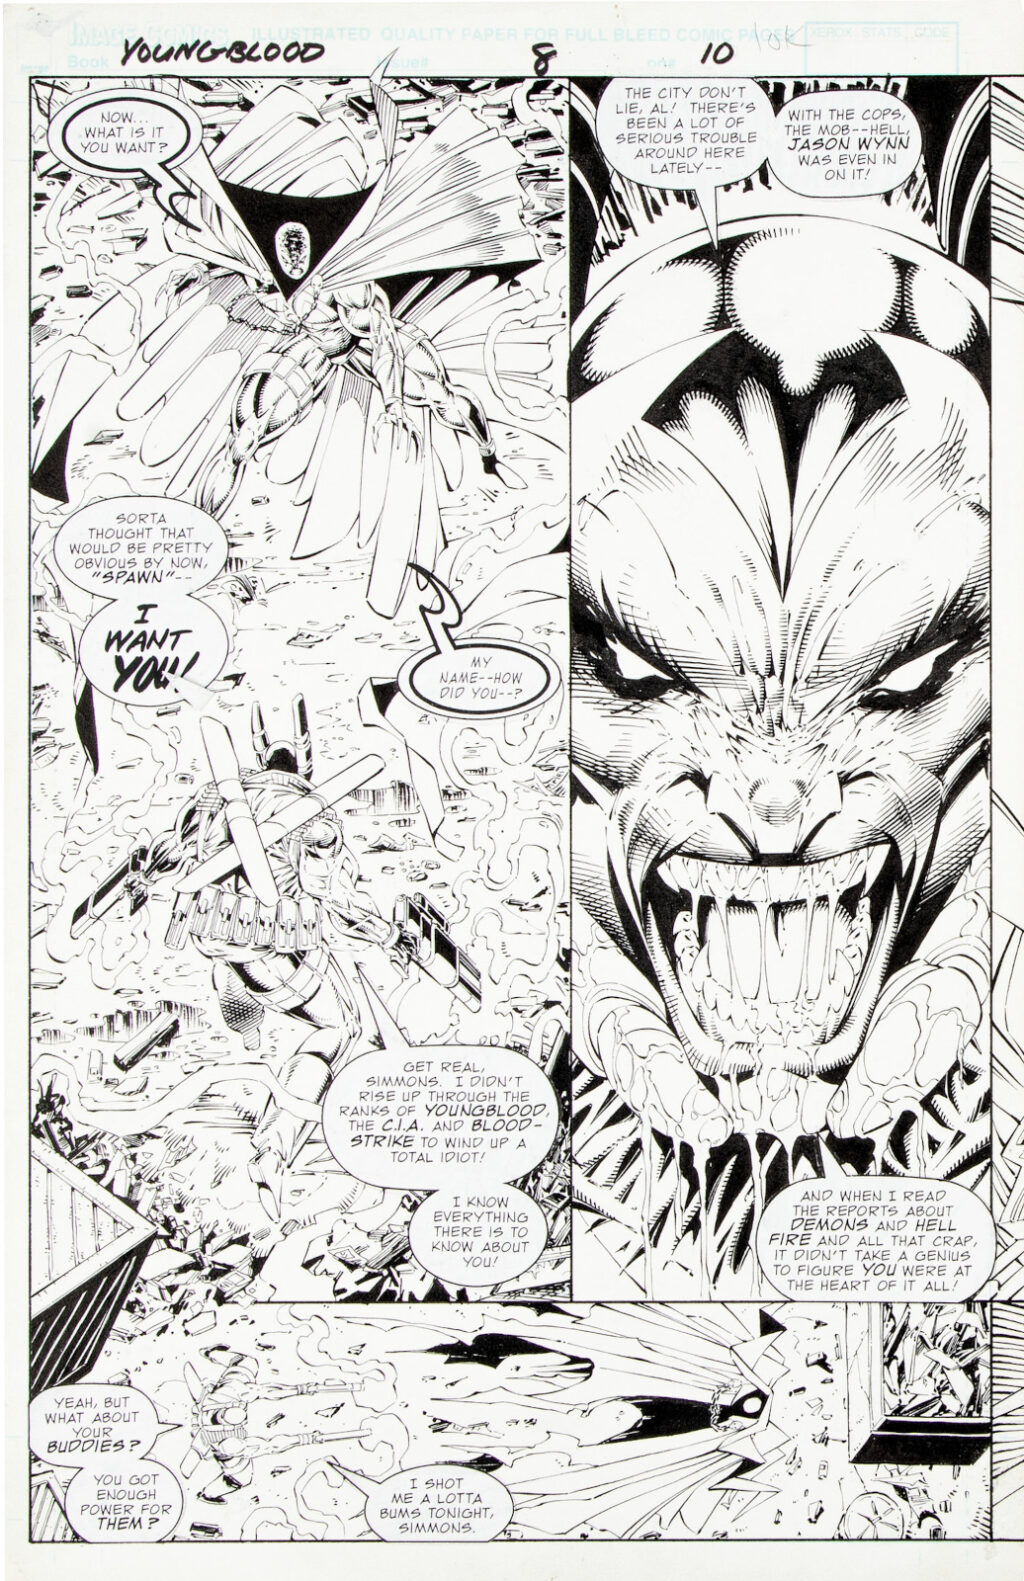 Youngblood issue 8 double splash by Rob Liefeld and Danny Miki 1